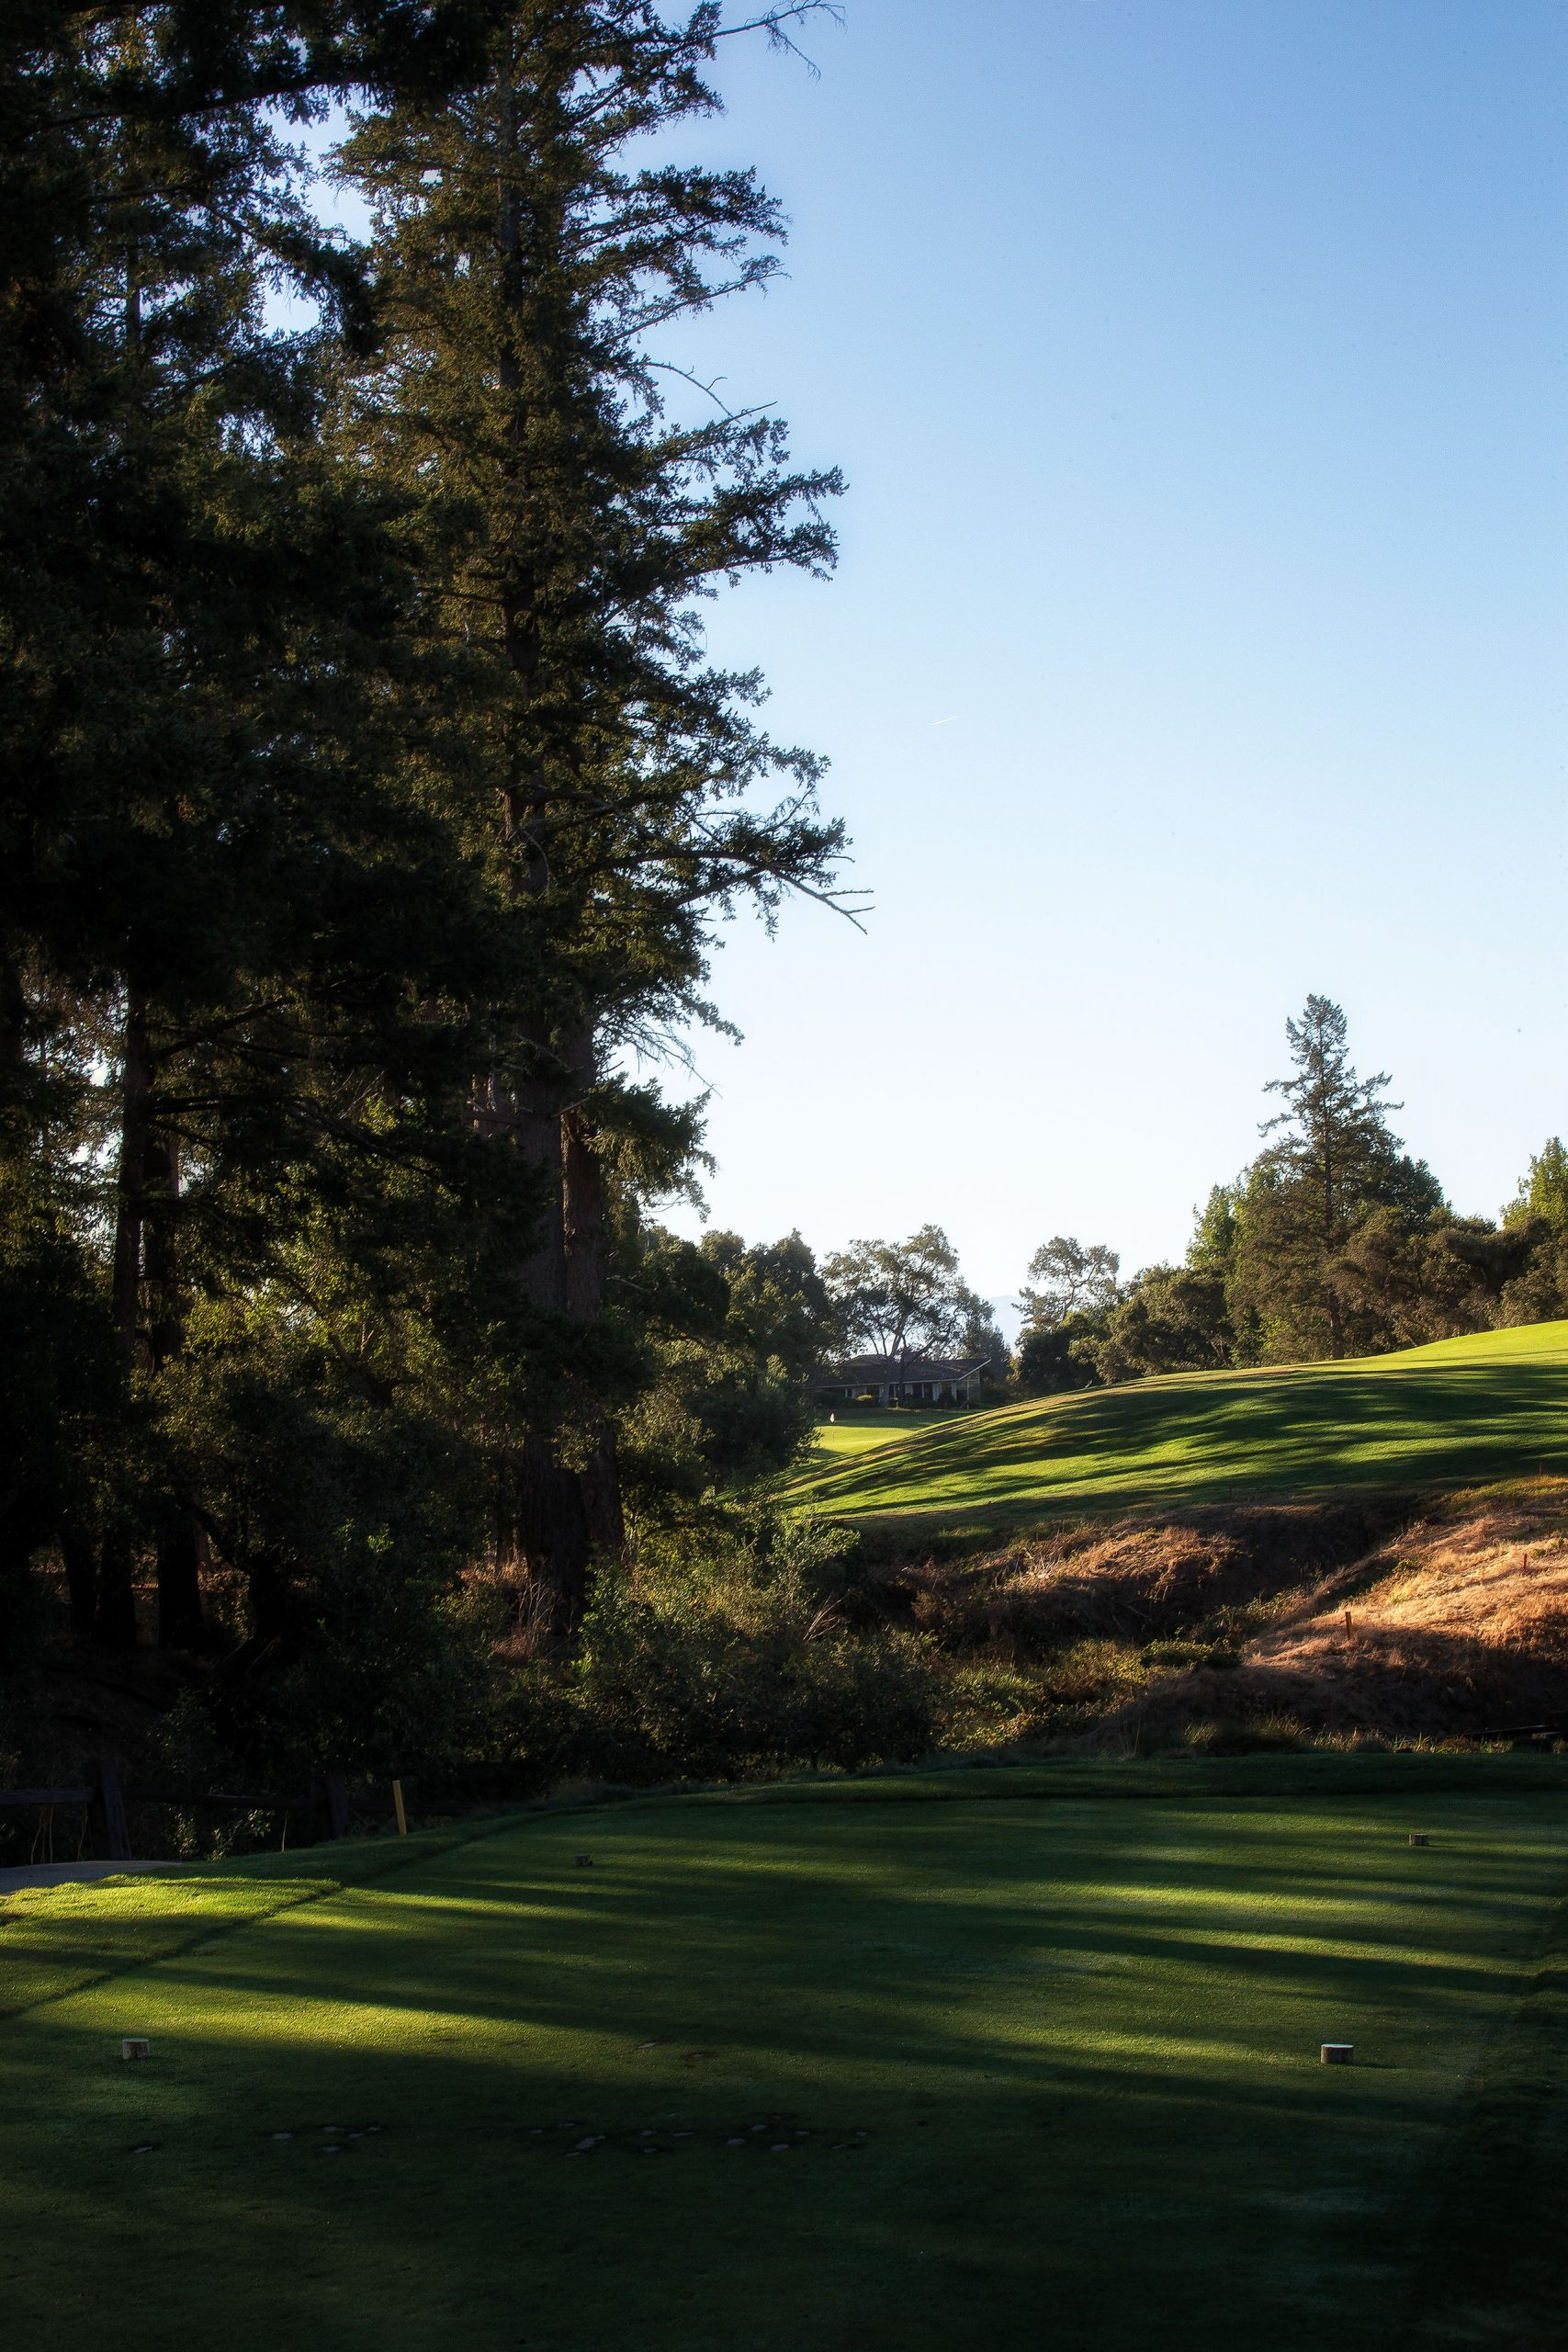 """The Spanish pasatiempo is translated as """"hobby"""" or """"pastime"""" or """"a relaxed passage of time,"""" and this is illustrated by the club's logo, but No. 16 is not a relaxing part of this passage. It's a true test of nerve and skill from tee to green. Images by Mike Gibbons"""